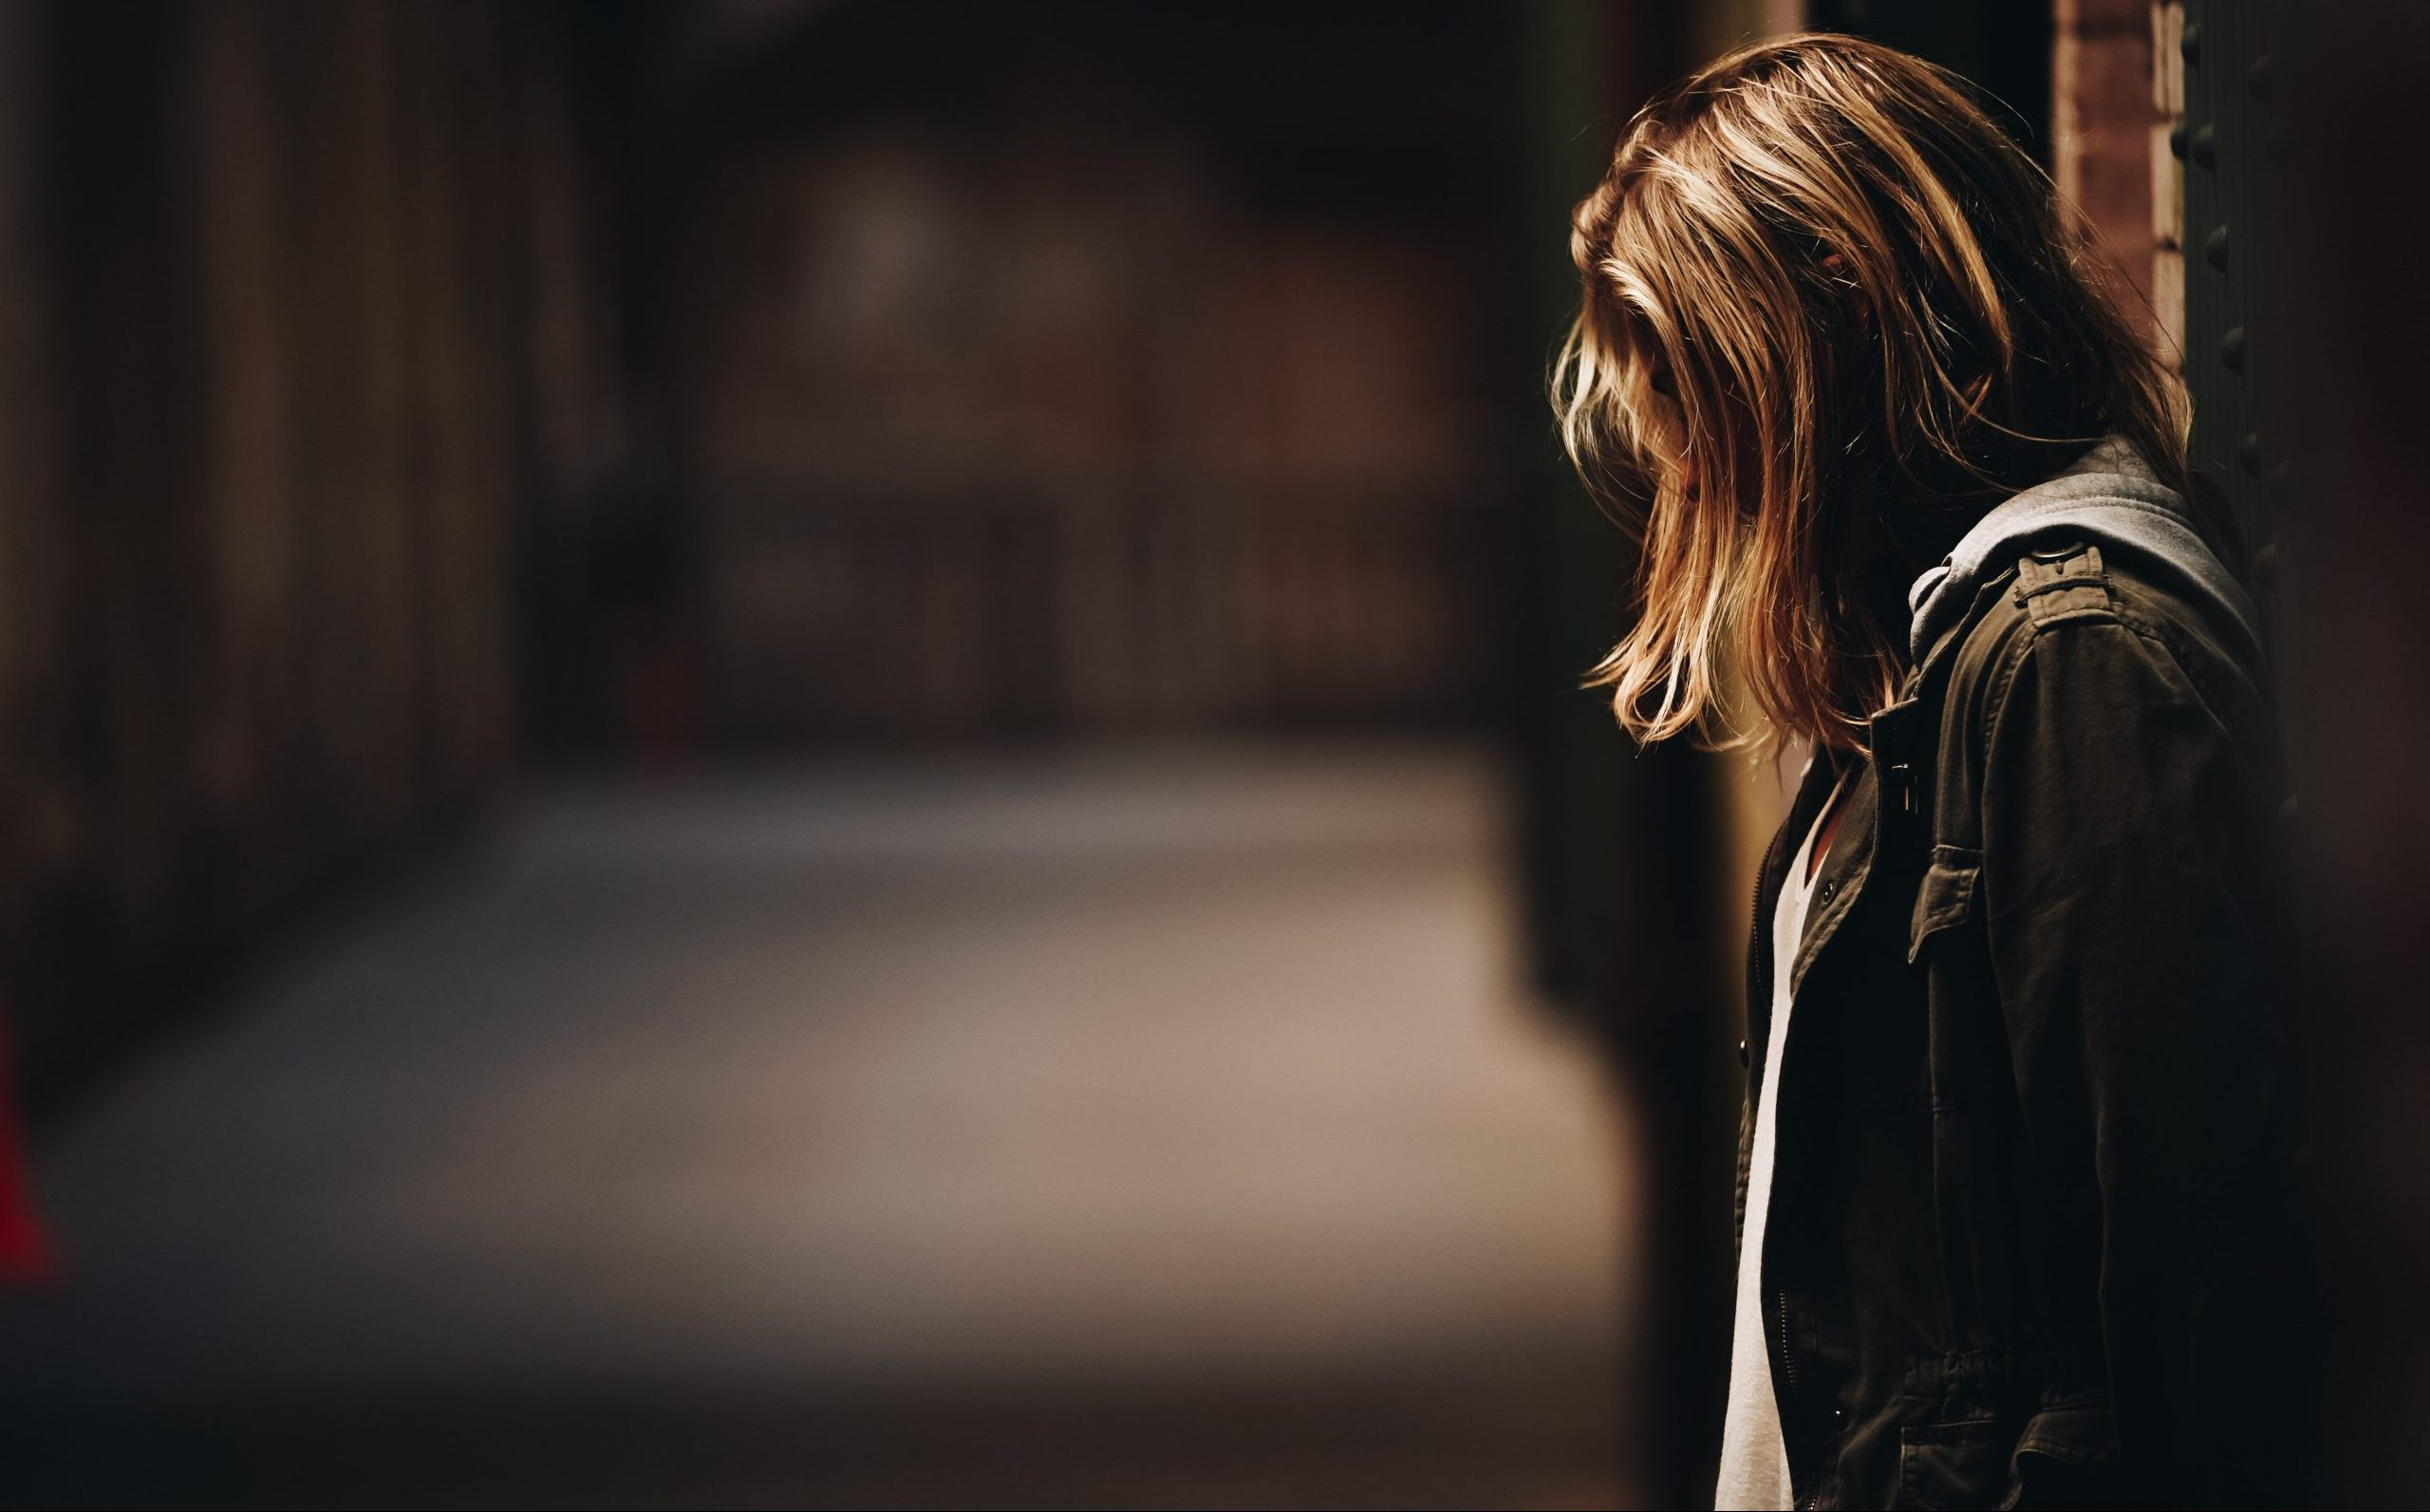 Sexual assault of female students still an issue across universities